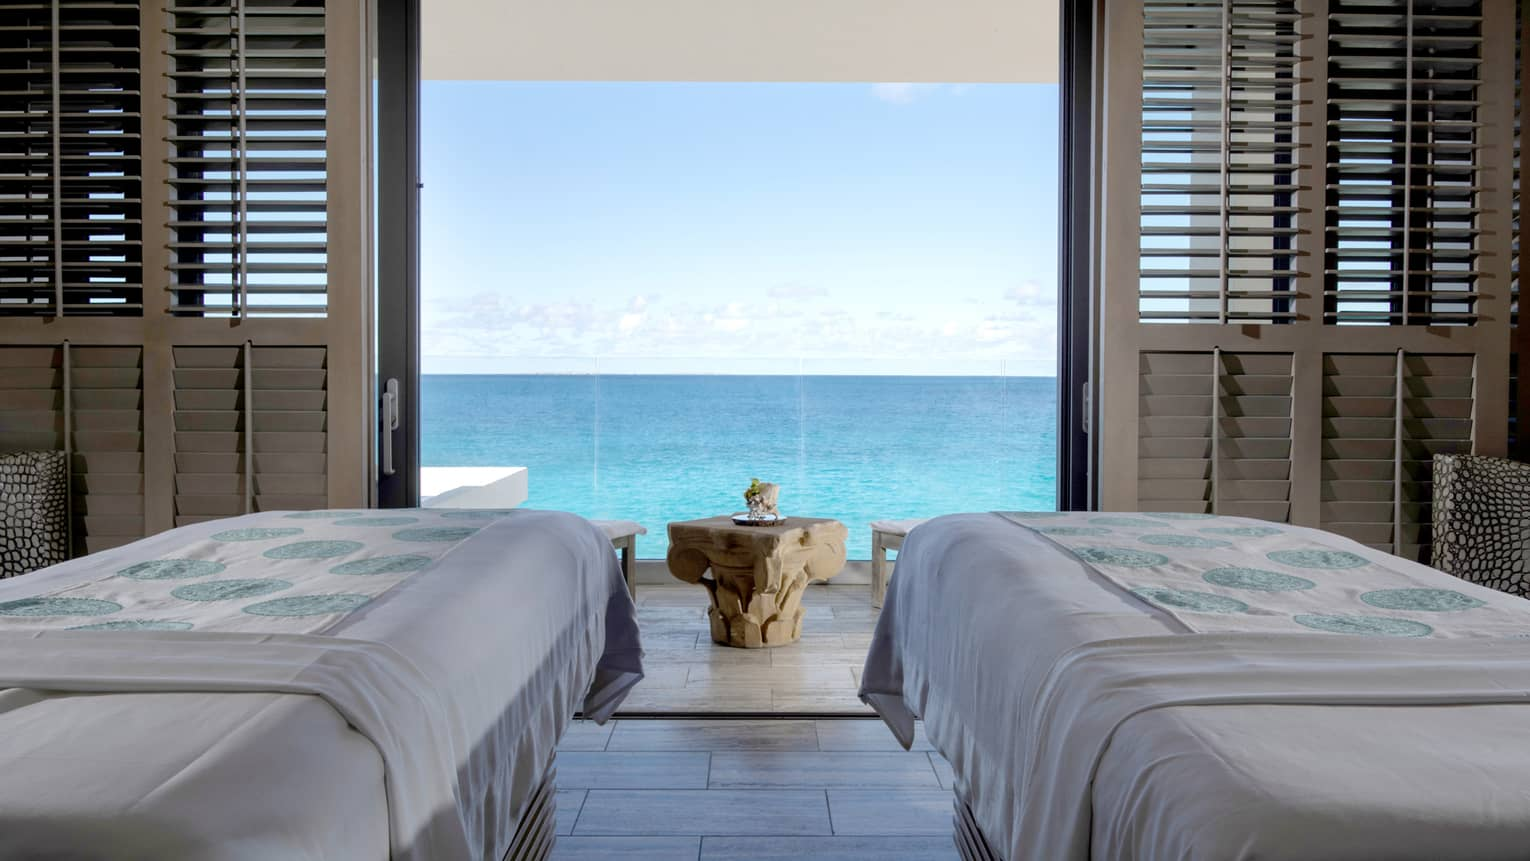 Couples massage beds in private spa cabana looking out at the ocean